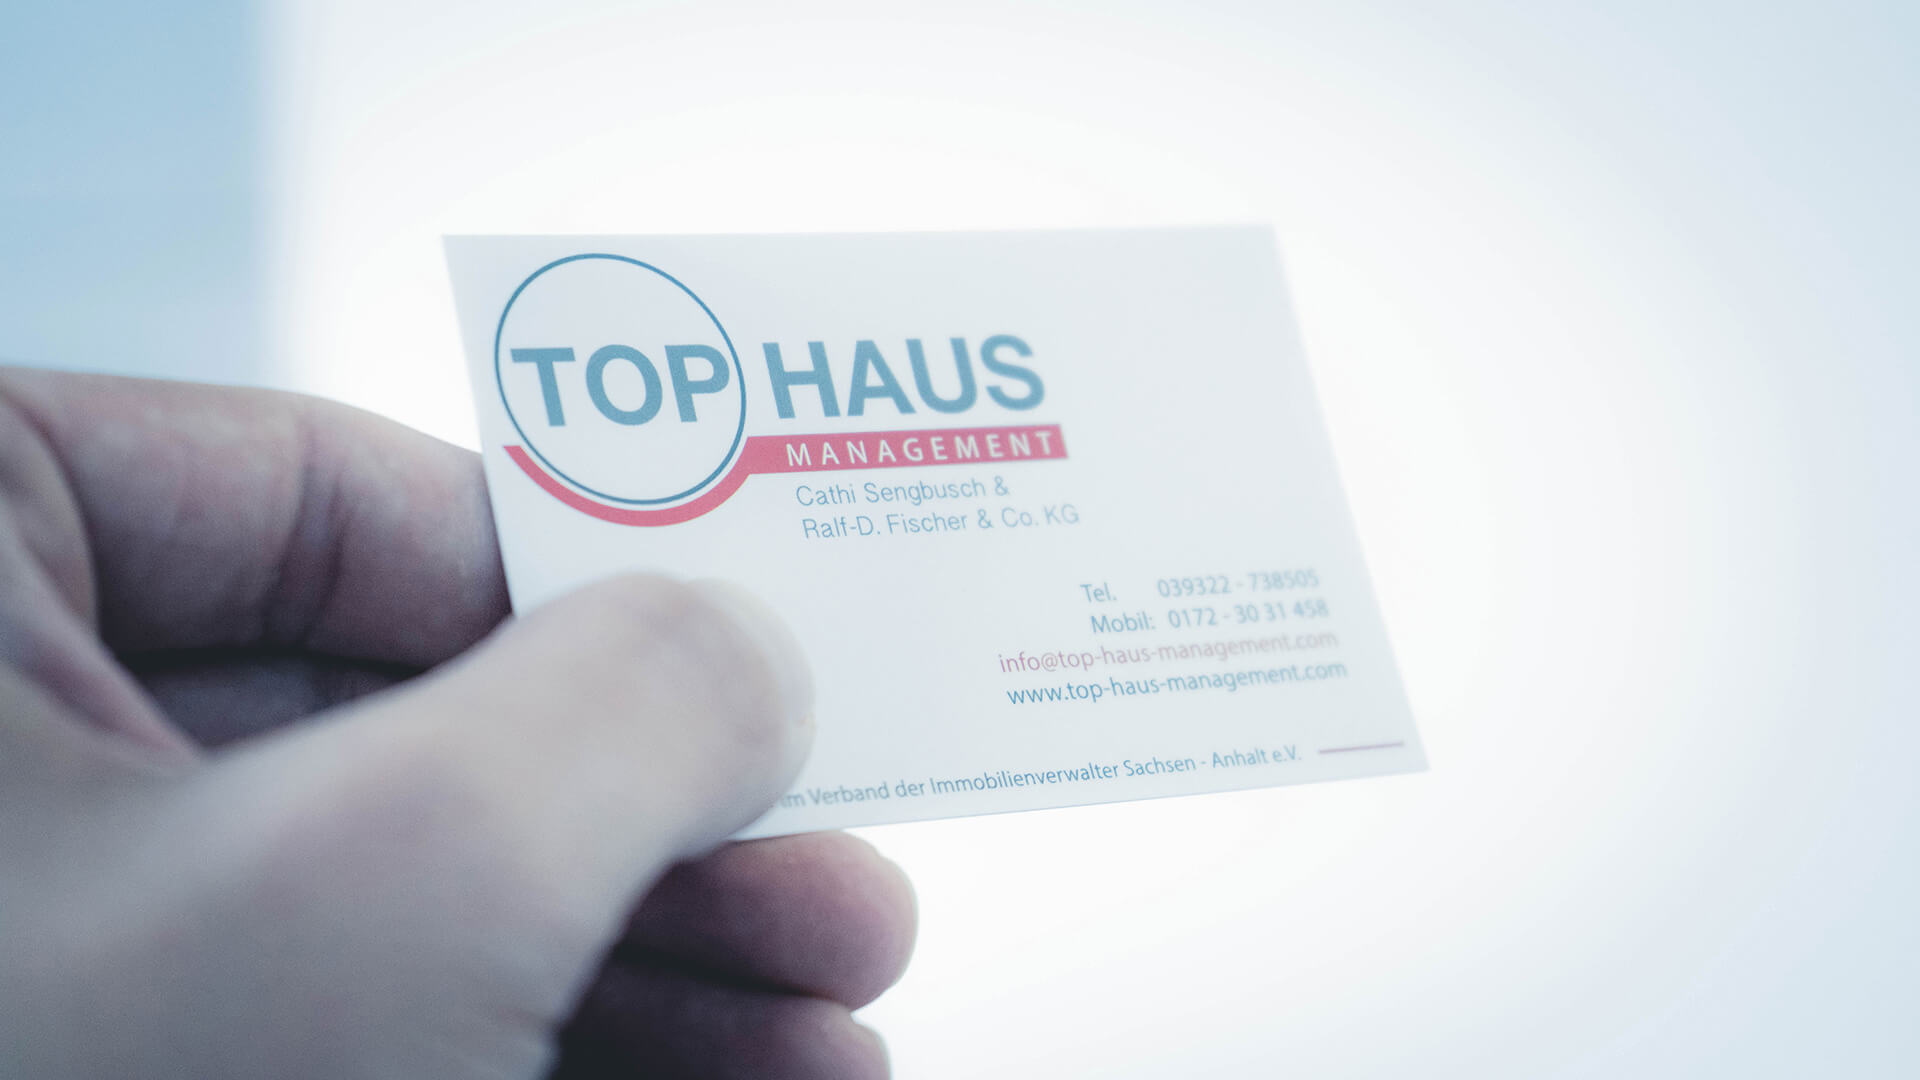 Top-Haus Management